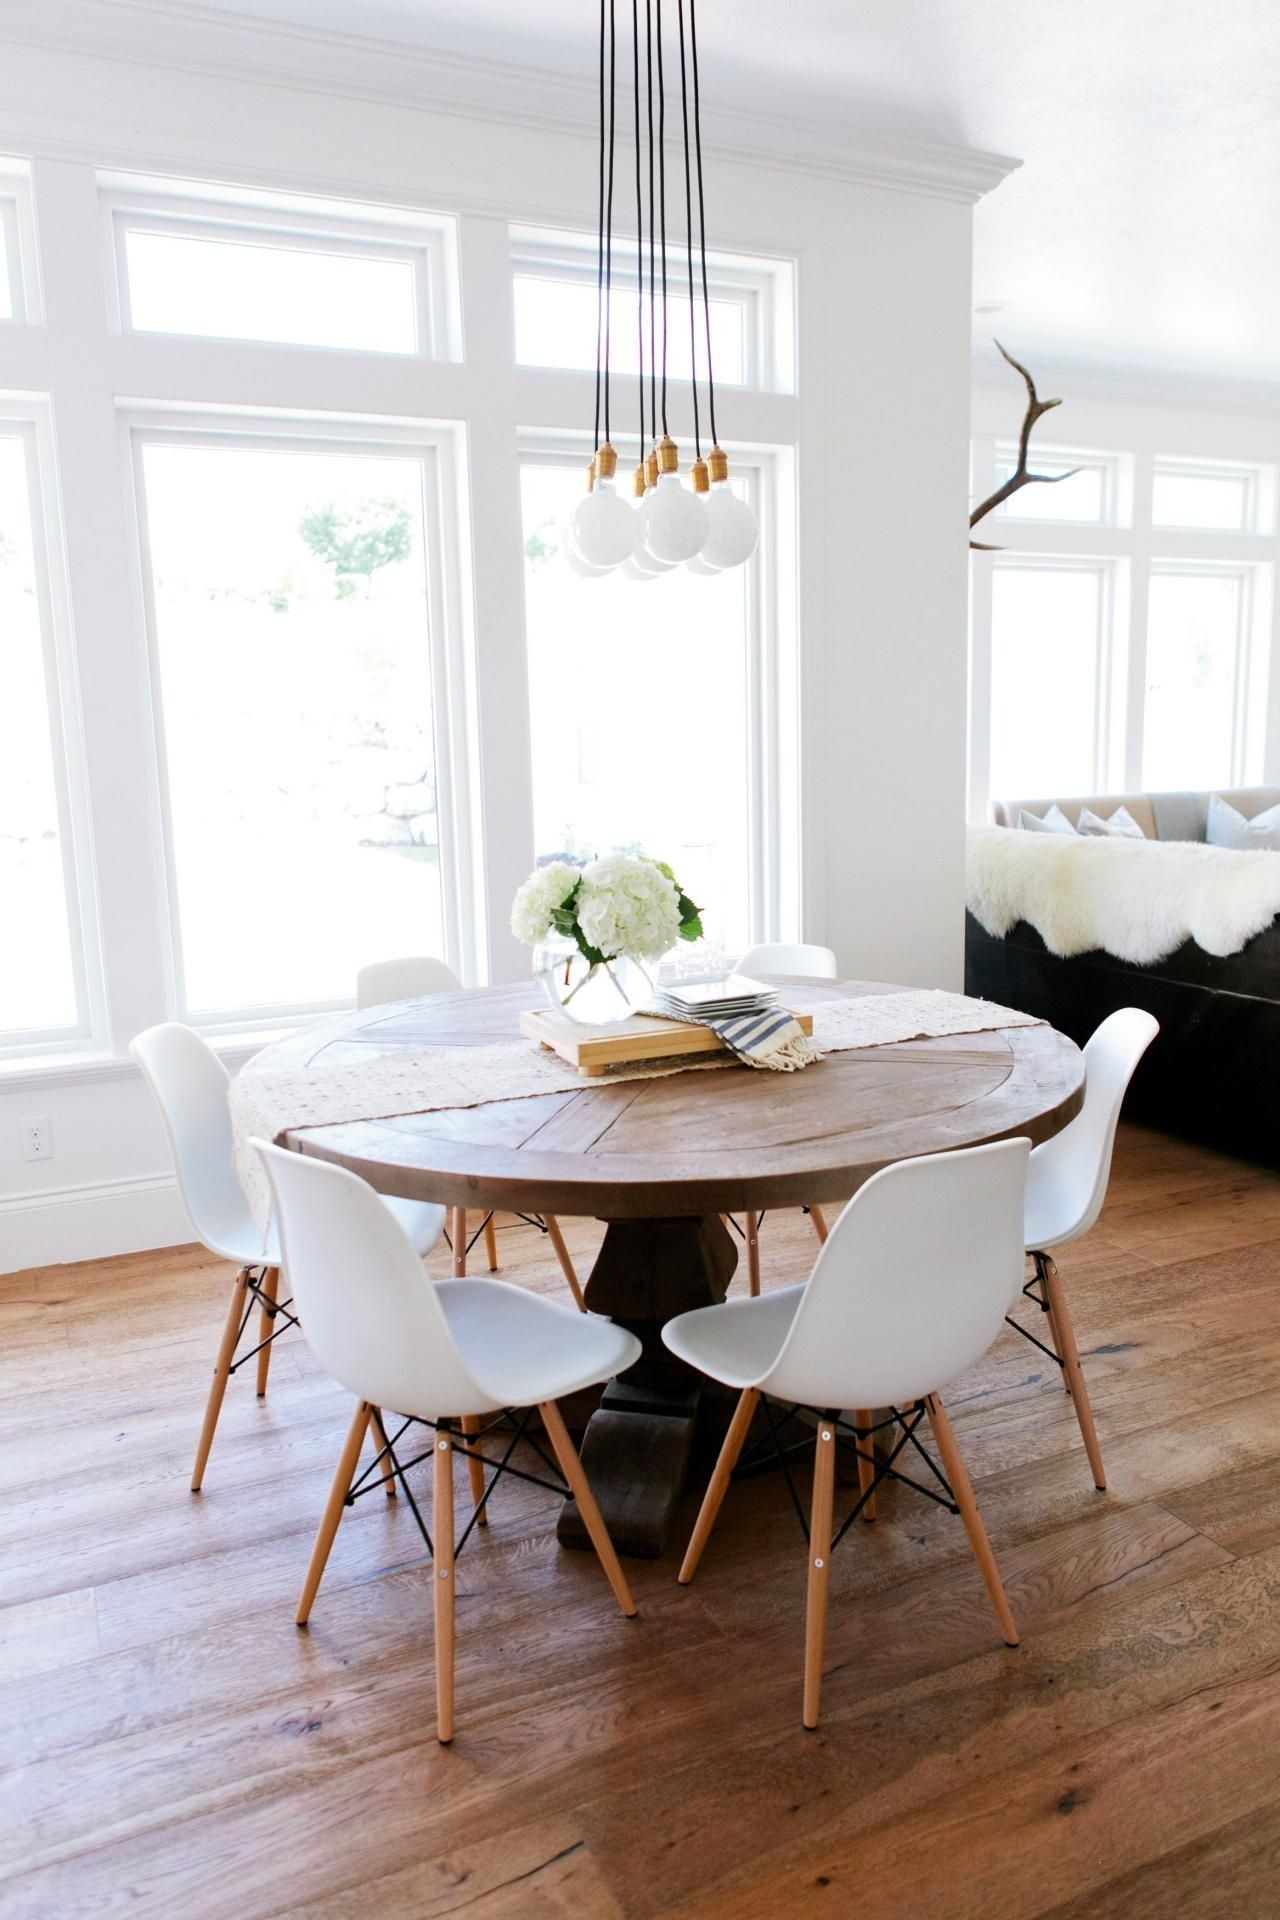 A Rustic Round Wood Table Surroundedwhite Eames Dining Chairs Creates An Interesting Mix In